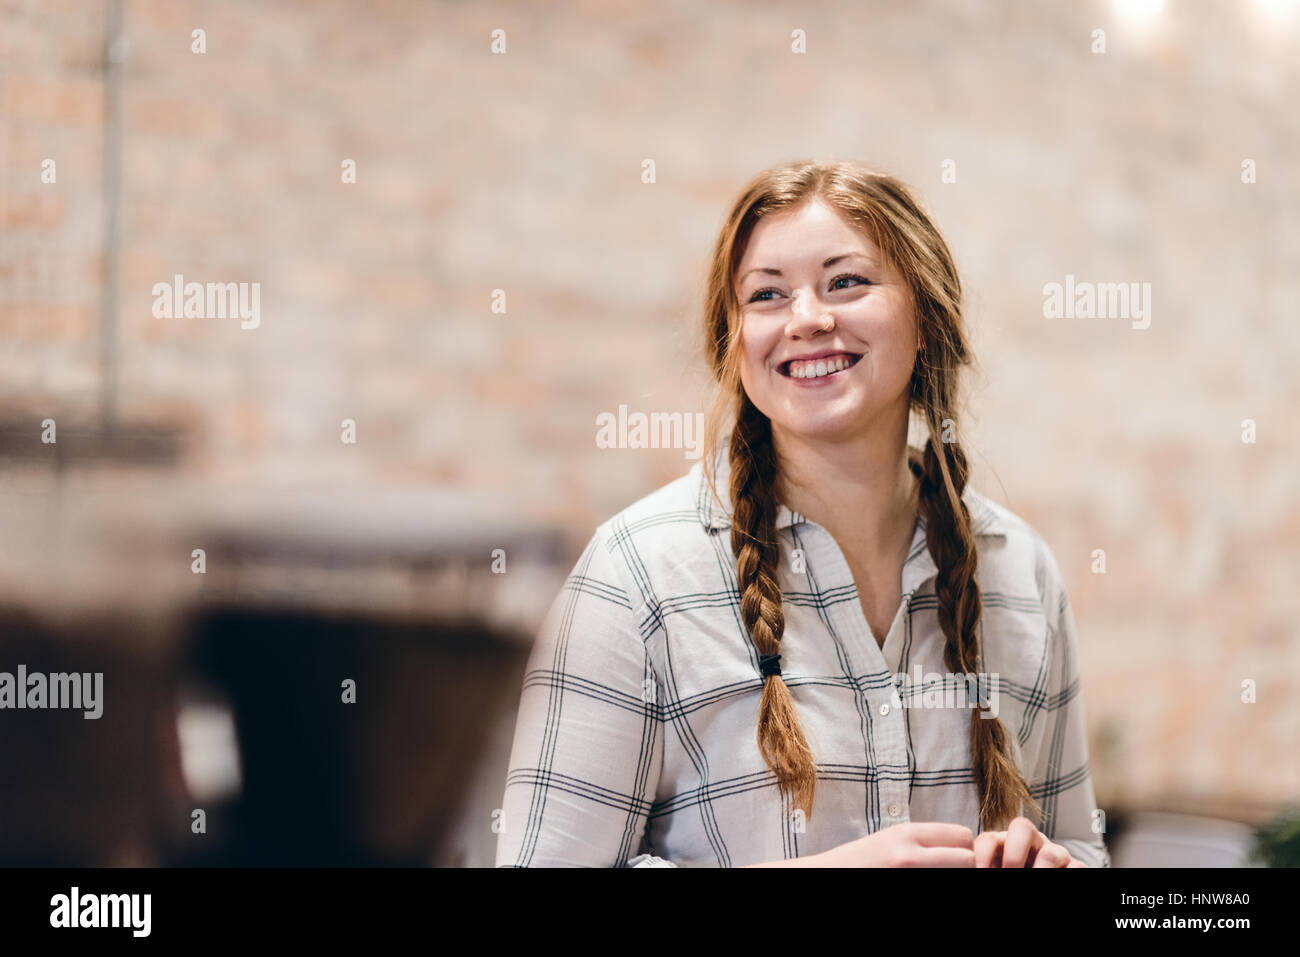 Happy young woman with pigtails - Stock Image